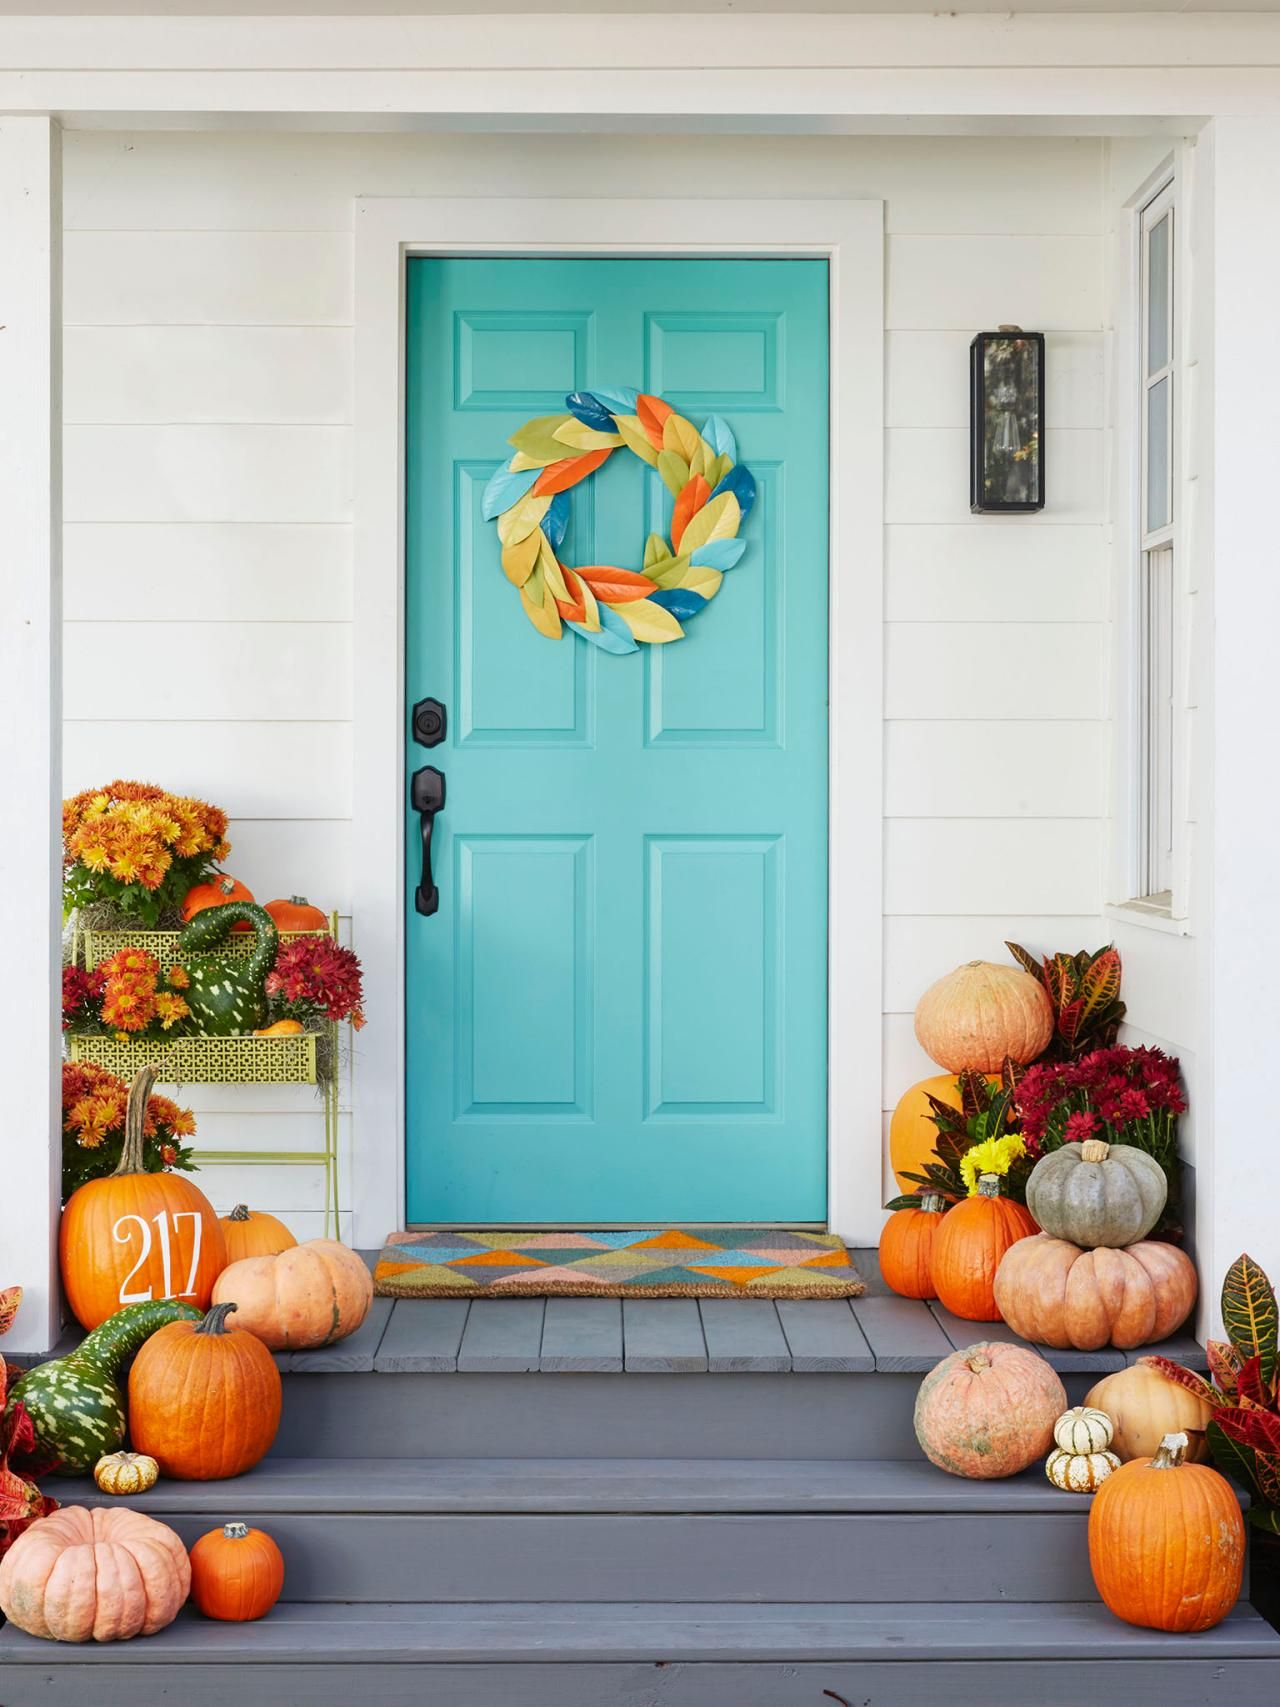 Fall decorating ideas on pinterest - Fall Decorating Ideas For Around The House